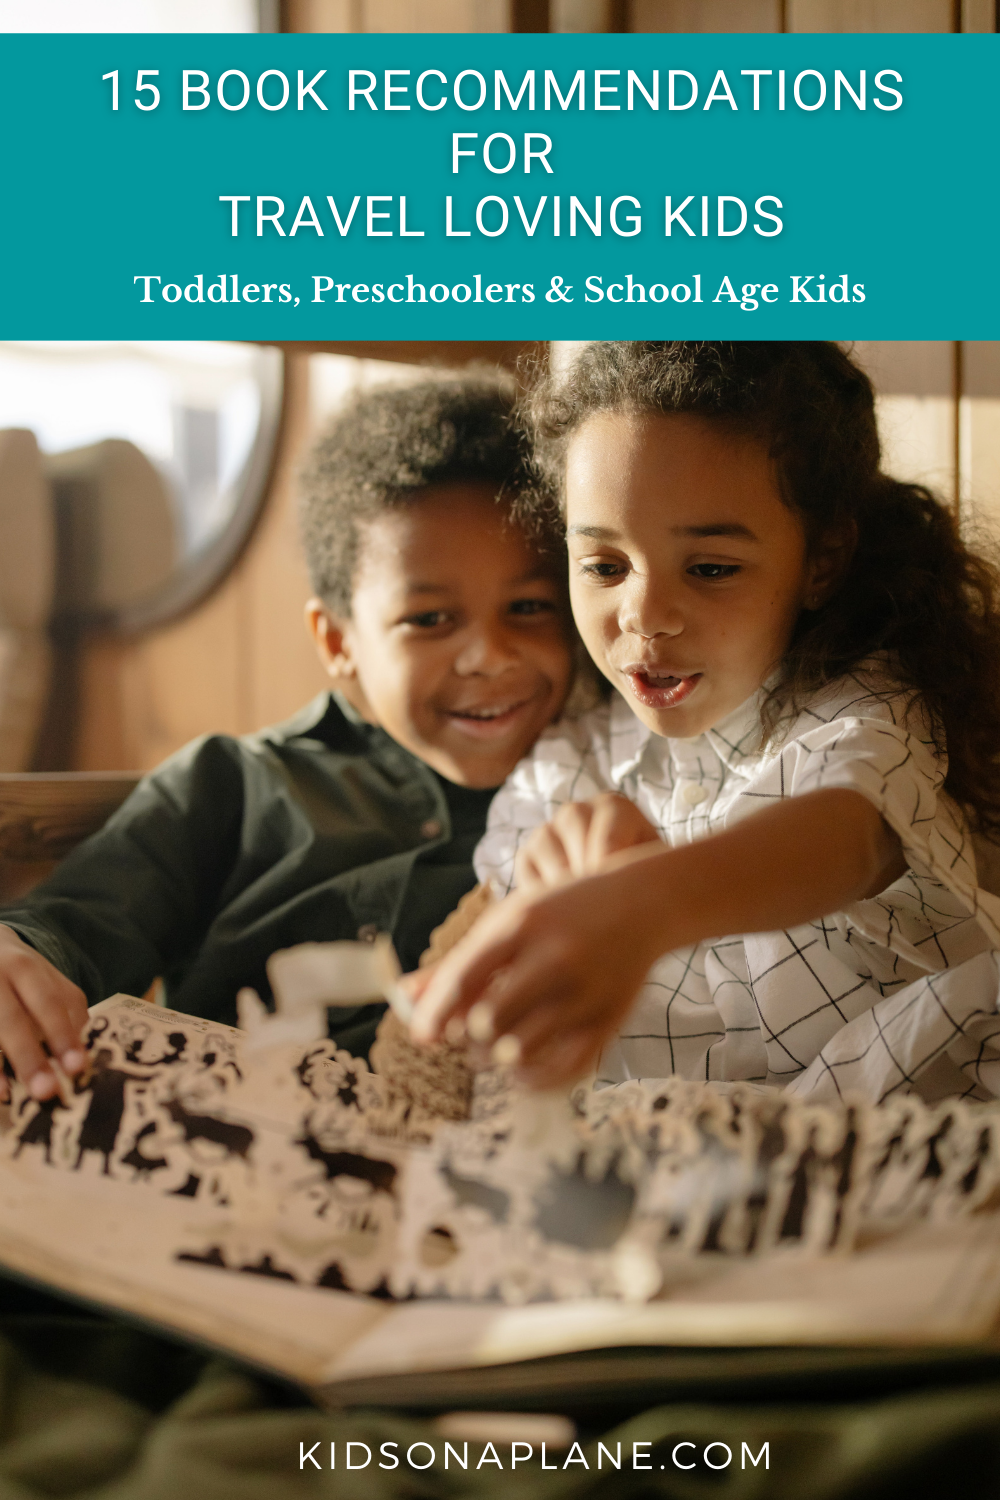 Book Recommendations for Kids Who Love to Travel and Explore - Toddlers, Preschoolers and School Age Children